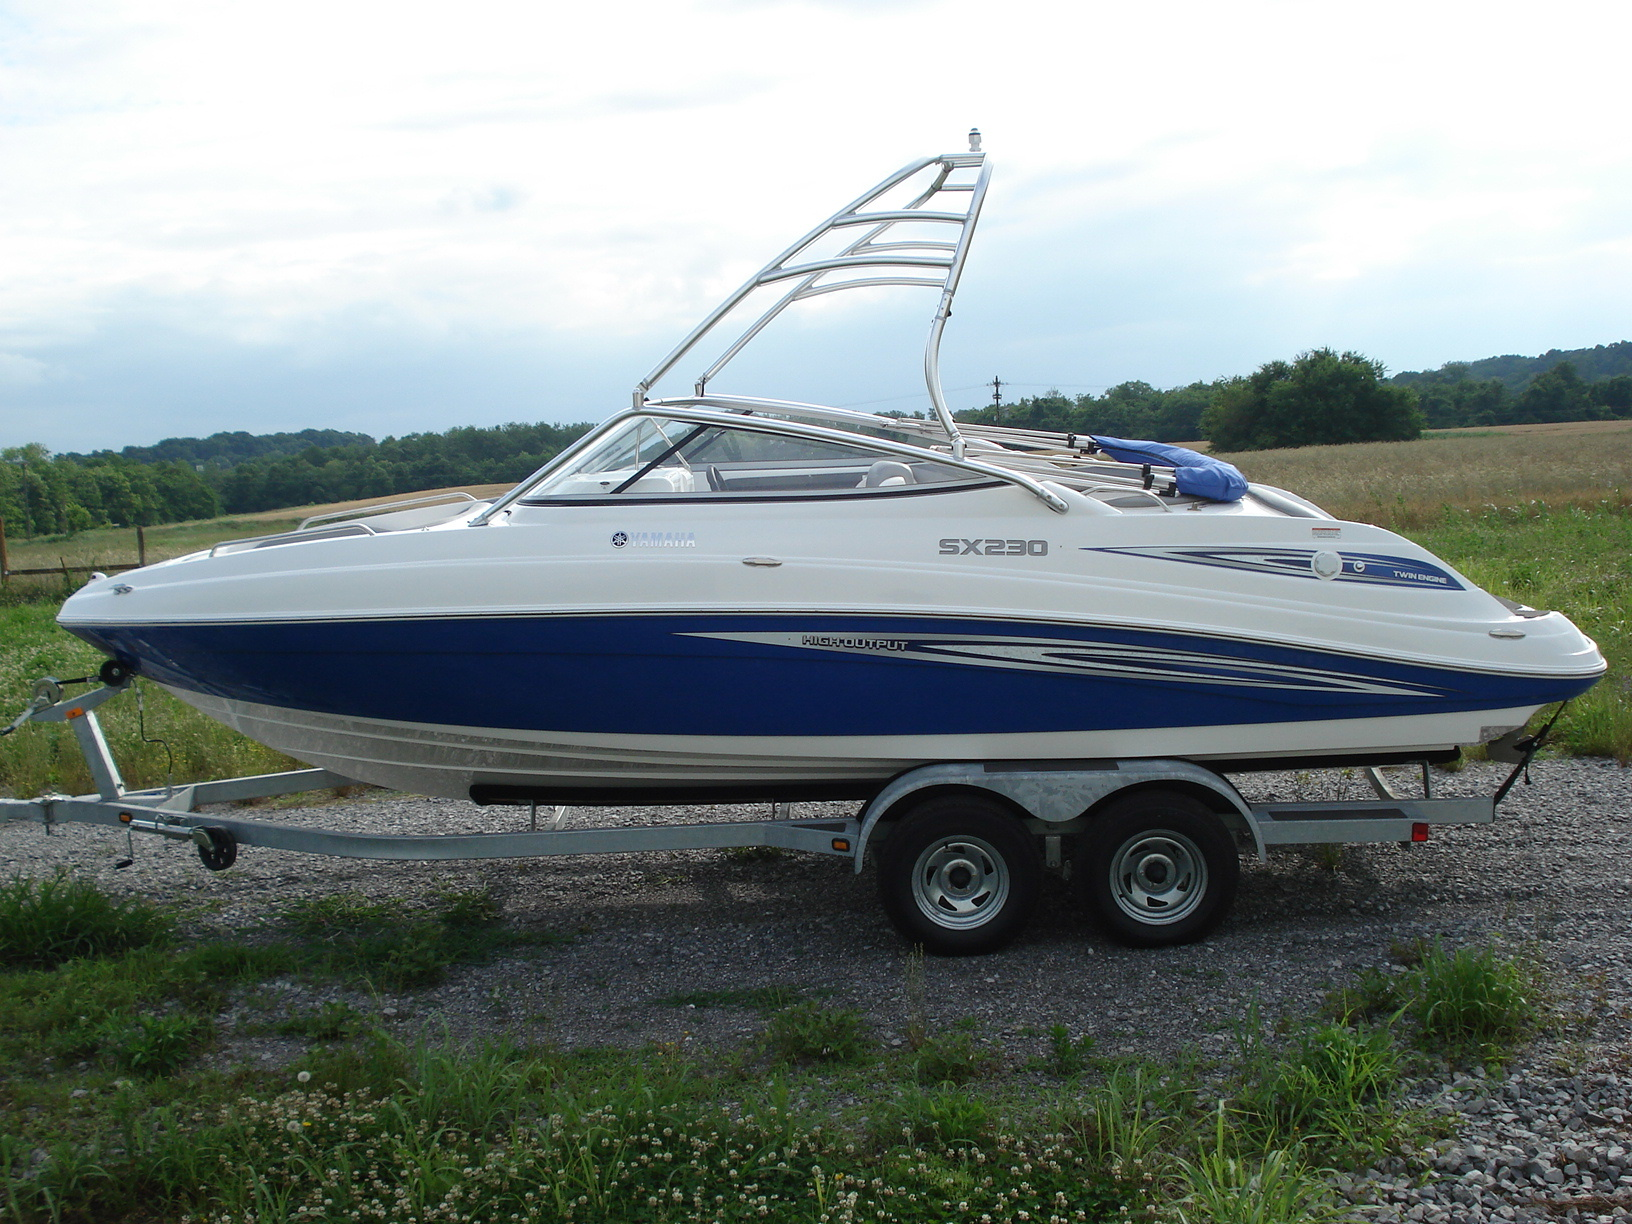 main image of 07 - 09 yamaha sx230 boat with new dimension towers wakeboard tower